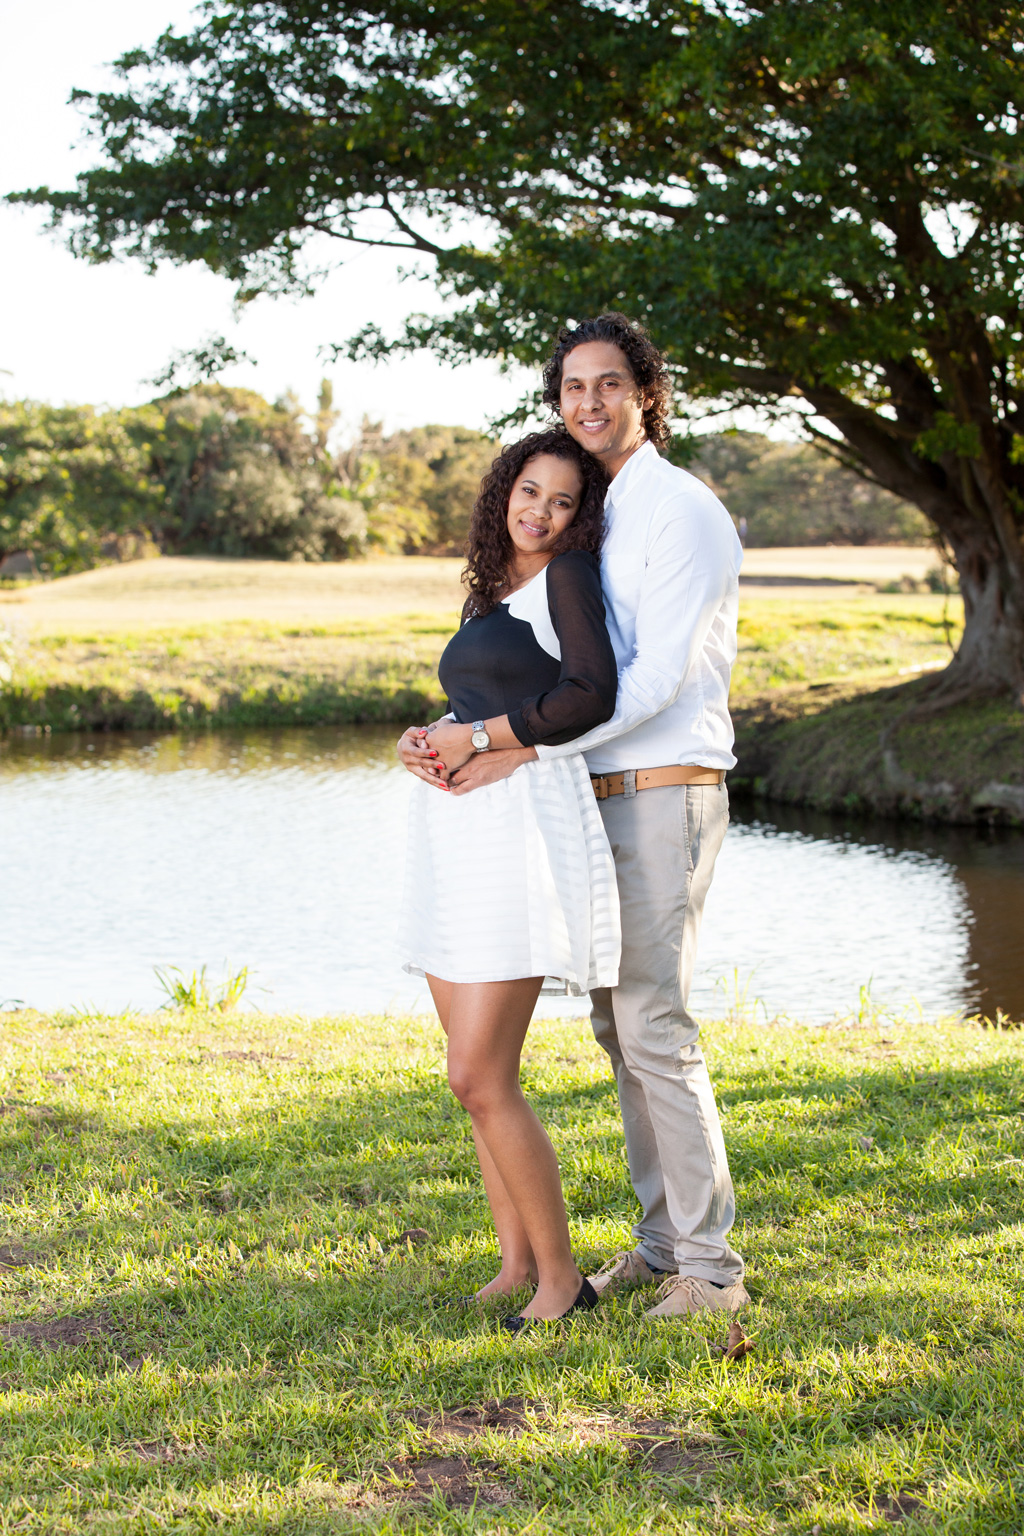 Engagement Shoot for Jaimie and Stephen